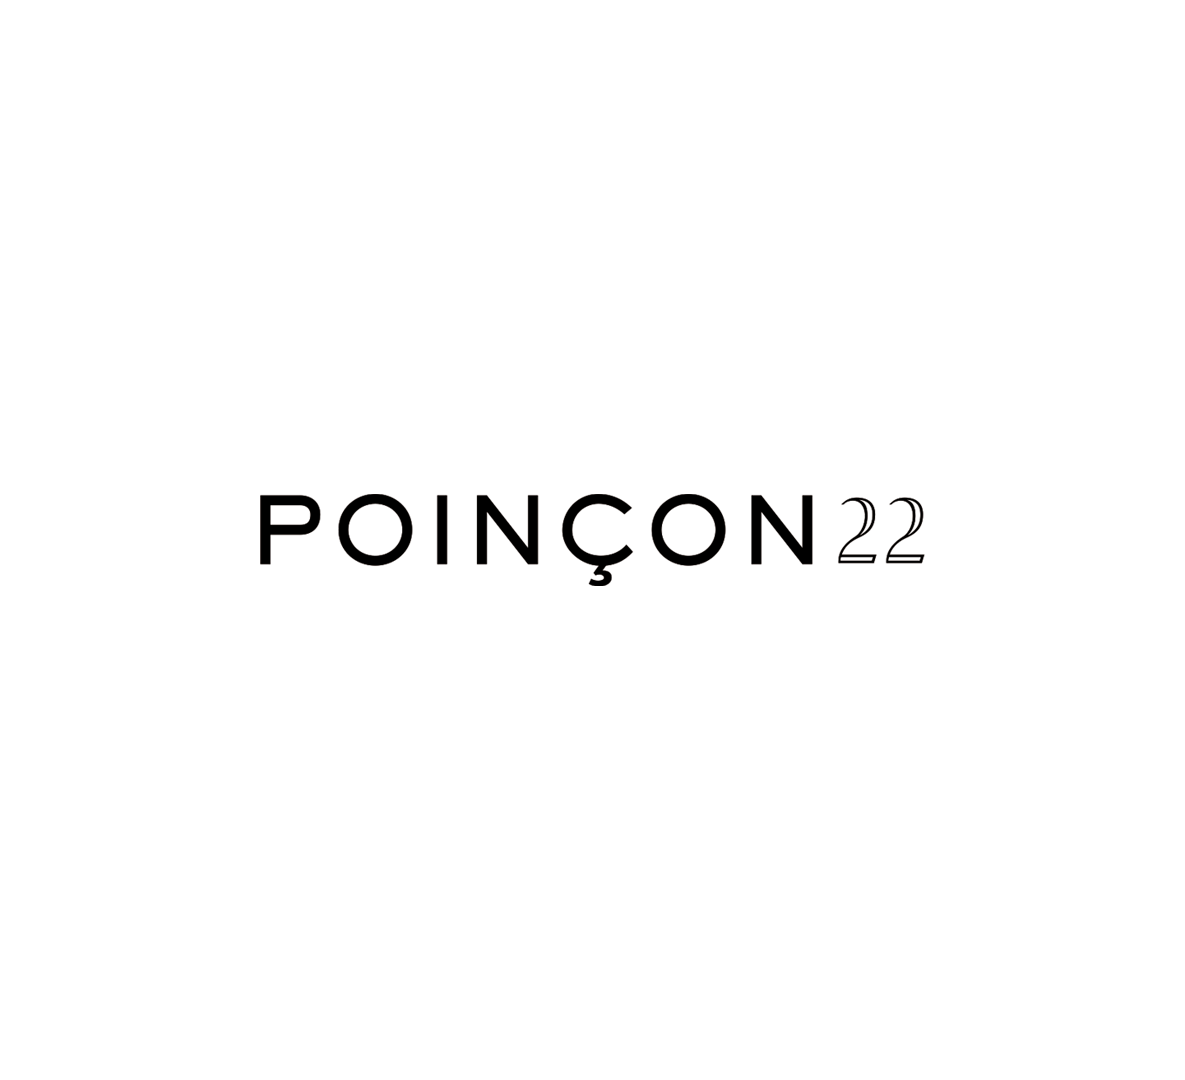 Poincon22-logo-transparent.png